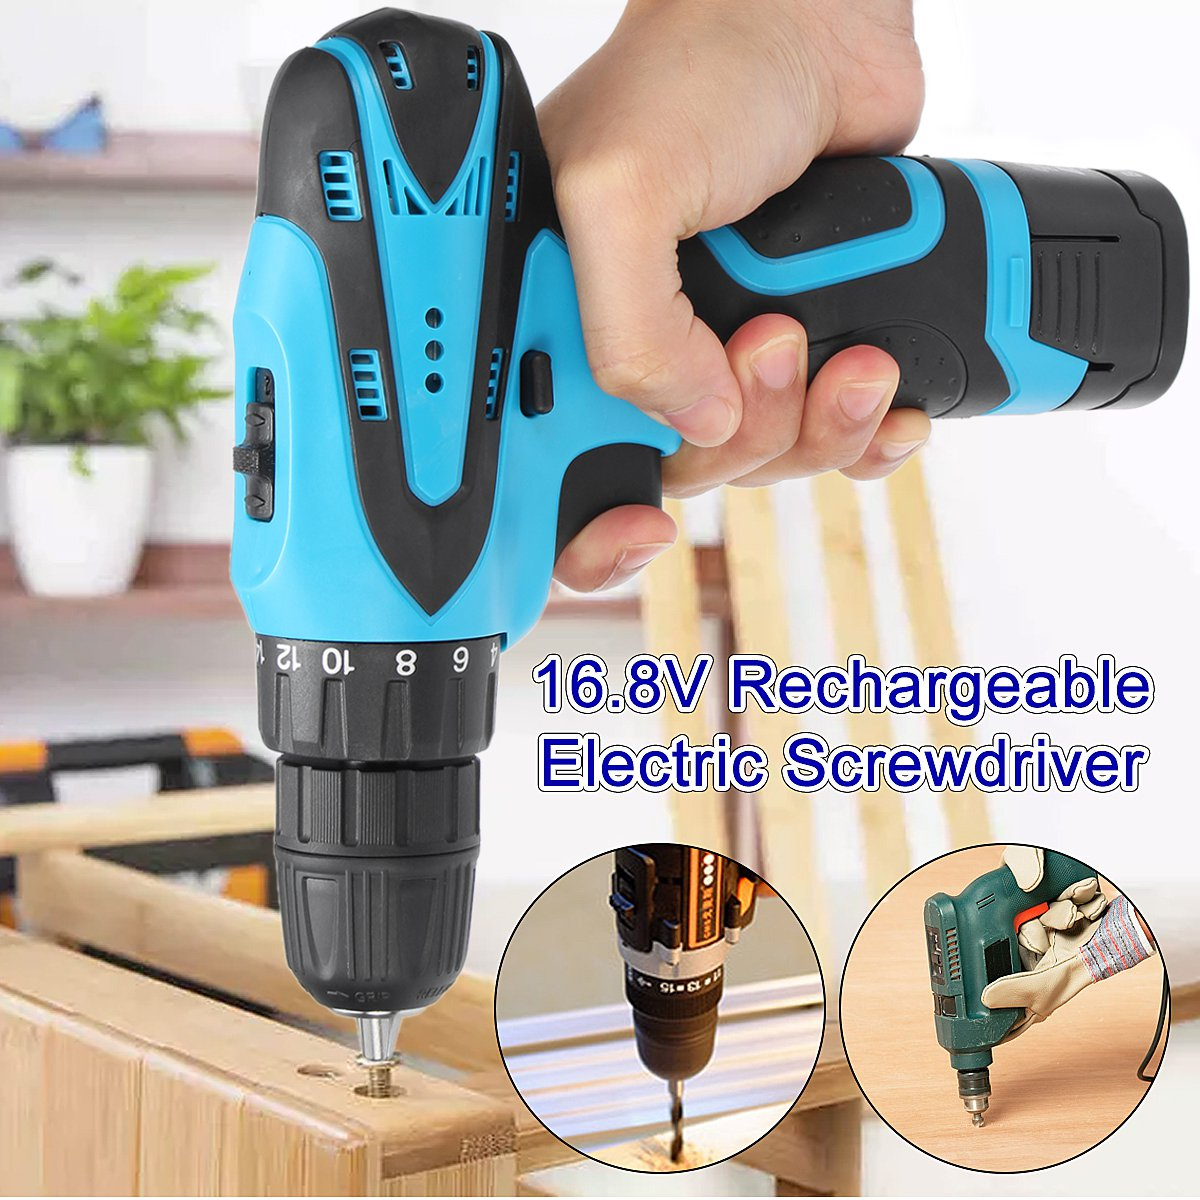 Reversible rechargeable lithium battery cordless electric screwdriver hand Percussion electric charging drill bit power too 2016 45 pcs rechargeable cordless reversible electric screwdriver 4 8v kit set hot handheld electric screwdriver